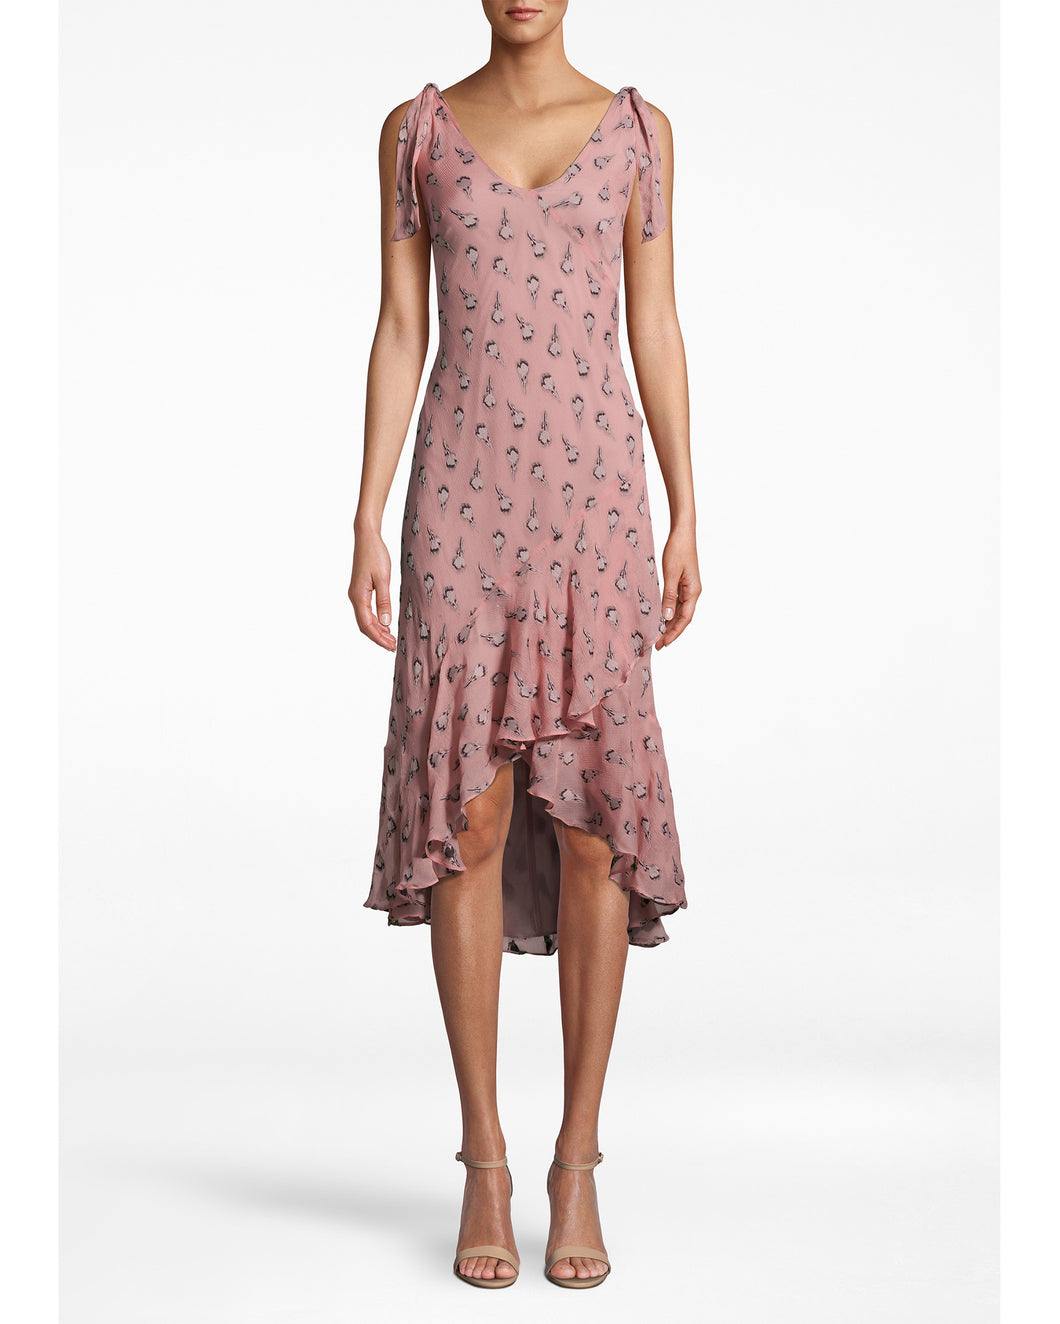 Nicole Miller Clipped Rose Asymmetrical Ruffle Tie Dress